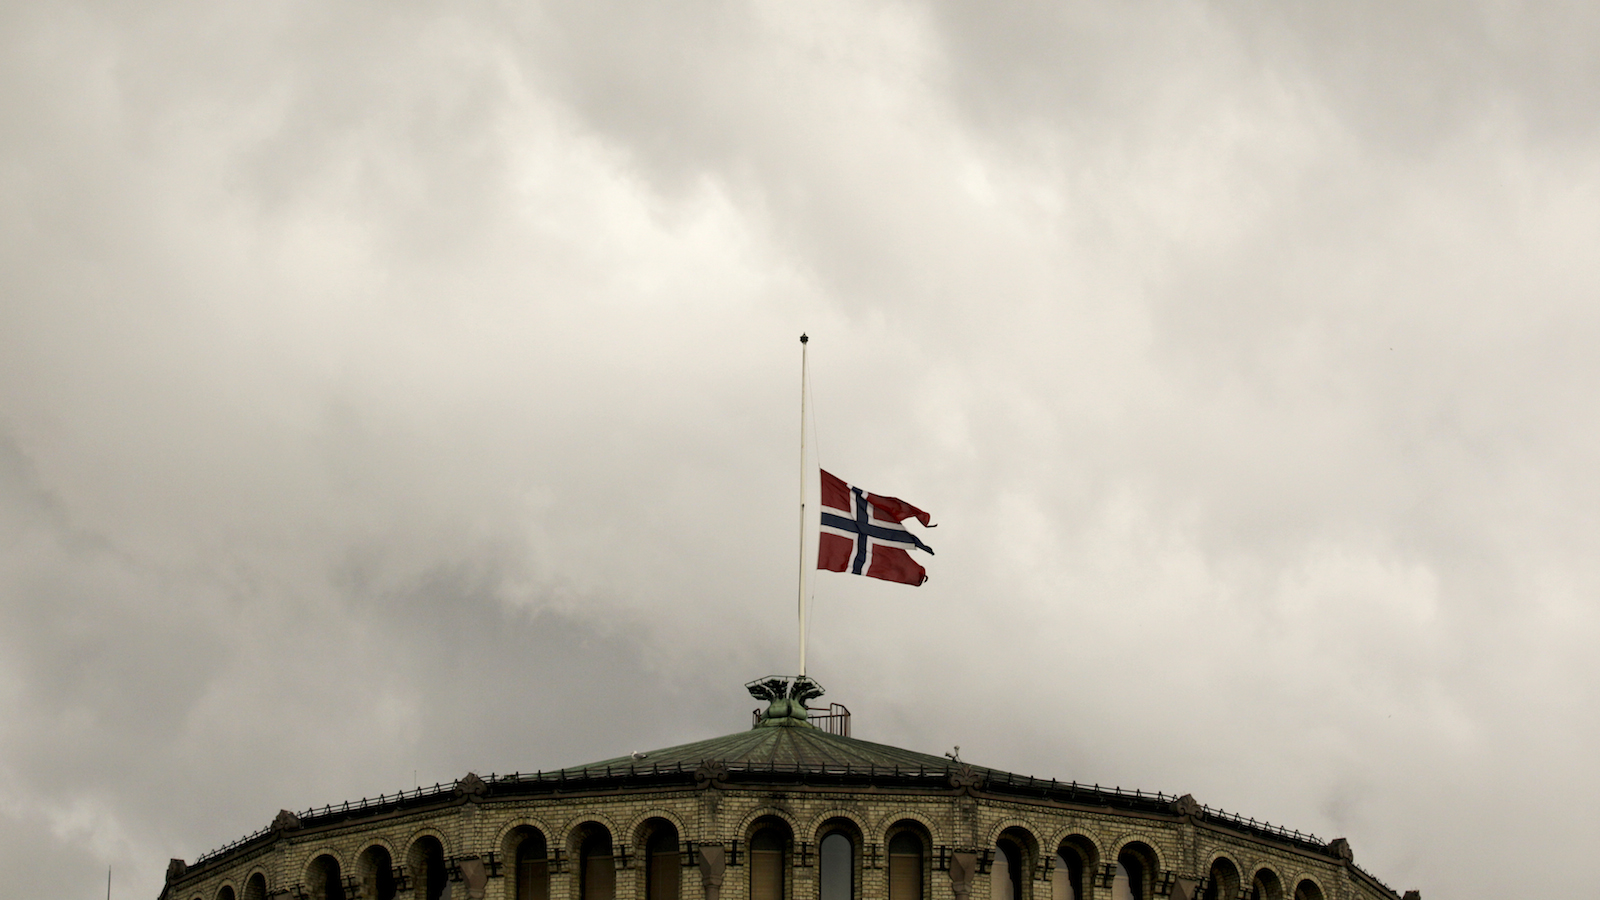 The Norwegian flag flutters at half-mast on the roof of the parliament building in Oslo July 23, 2011. Norwegian police searched for more victims on Saturday after a suspected right-wing zealot killed at least 92 people in a shooting spree and bomb attack that have traumatised a once-placid country. REUTERS/Wolfgang Rattay (NORWAY - Tags: CIVIL UNREST CRIME LAW IMAGES OF THE DAY) - RTR2P73Q